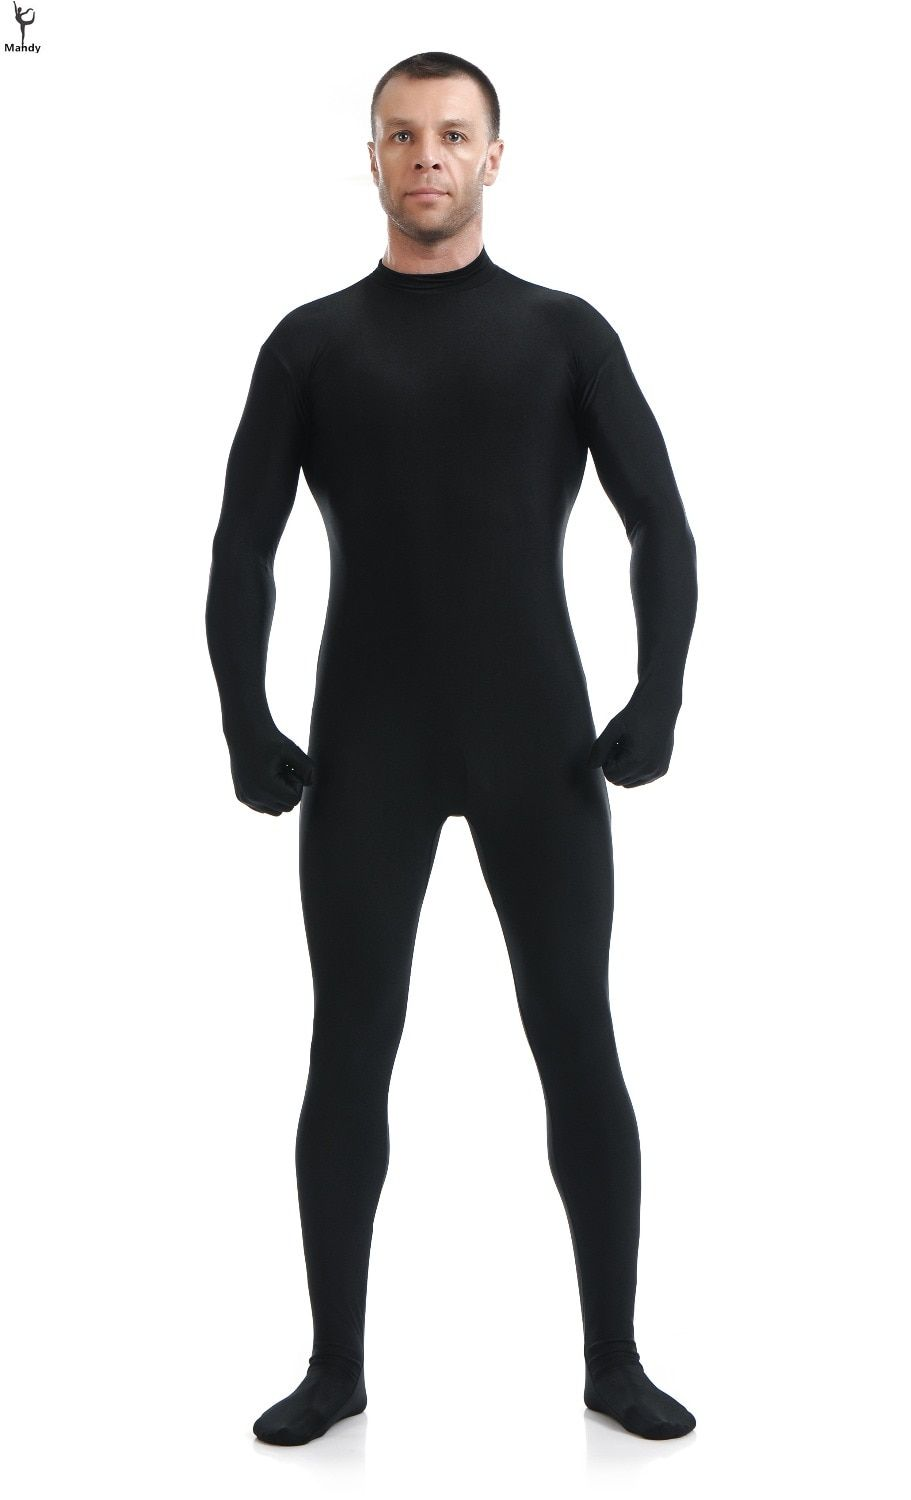 Mandy Custom Second Skin Tight Suits Lycra Zentai Suit No Hood Black Mock Neck Spandex Unitard Mens Cosplay Full Body Bodysuits